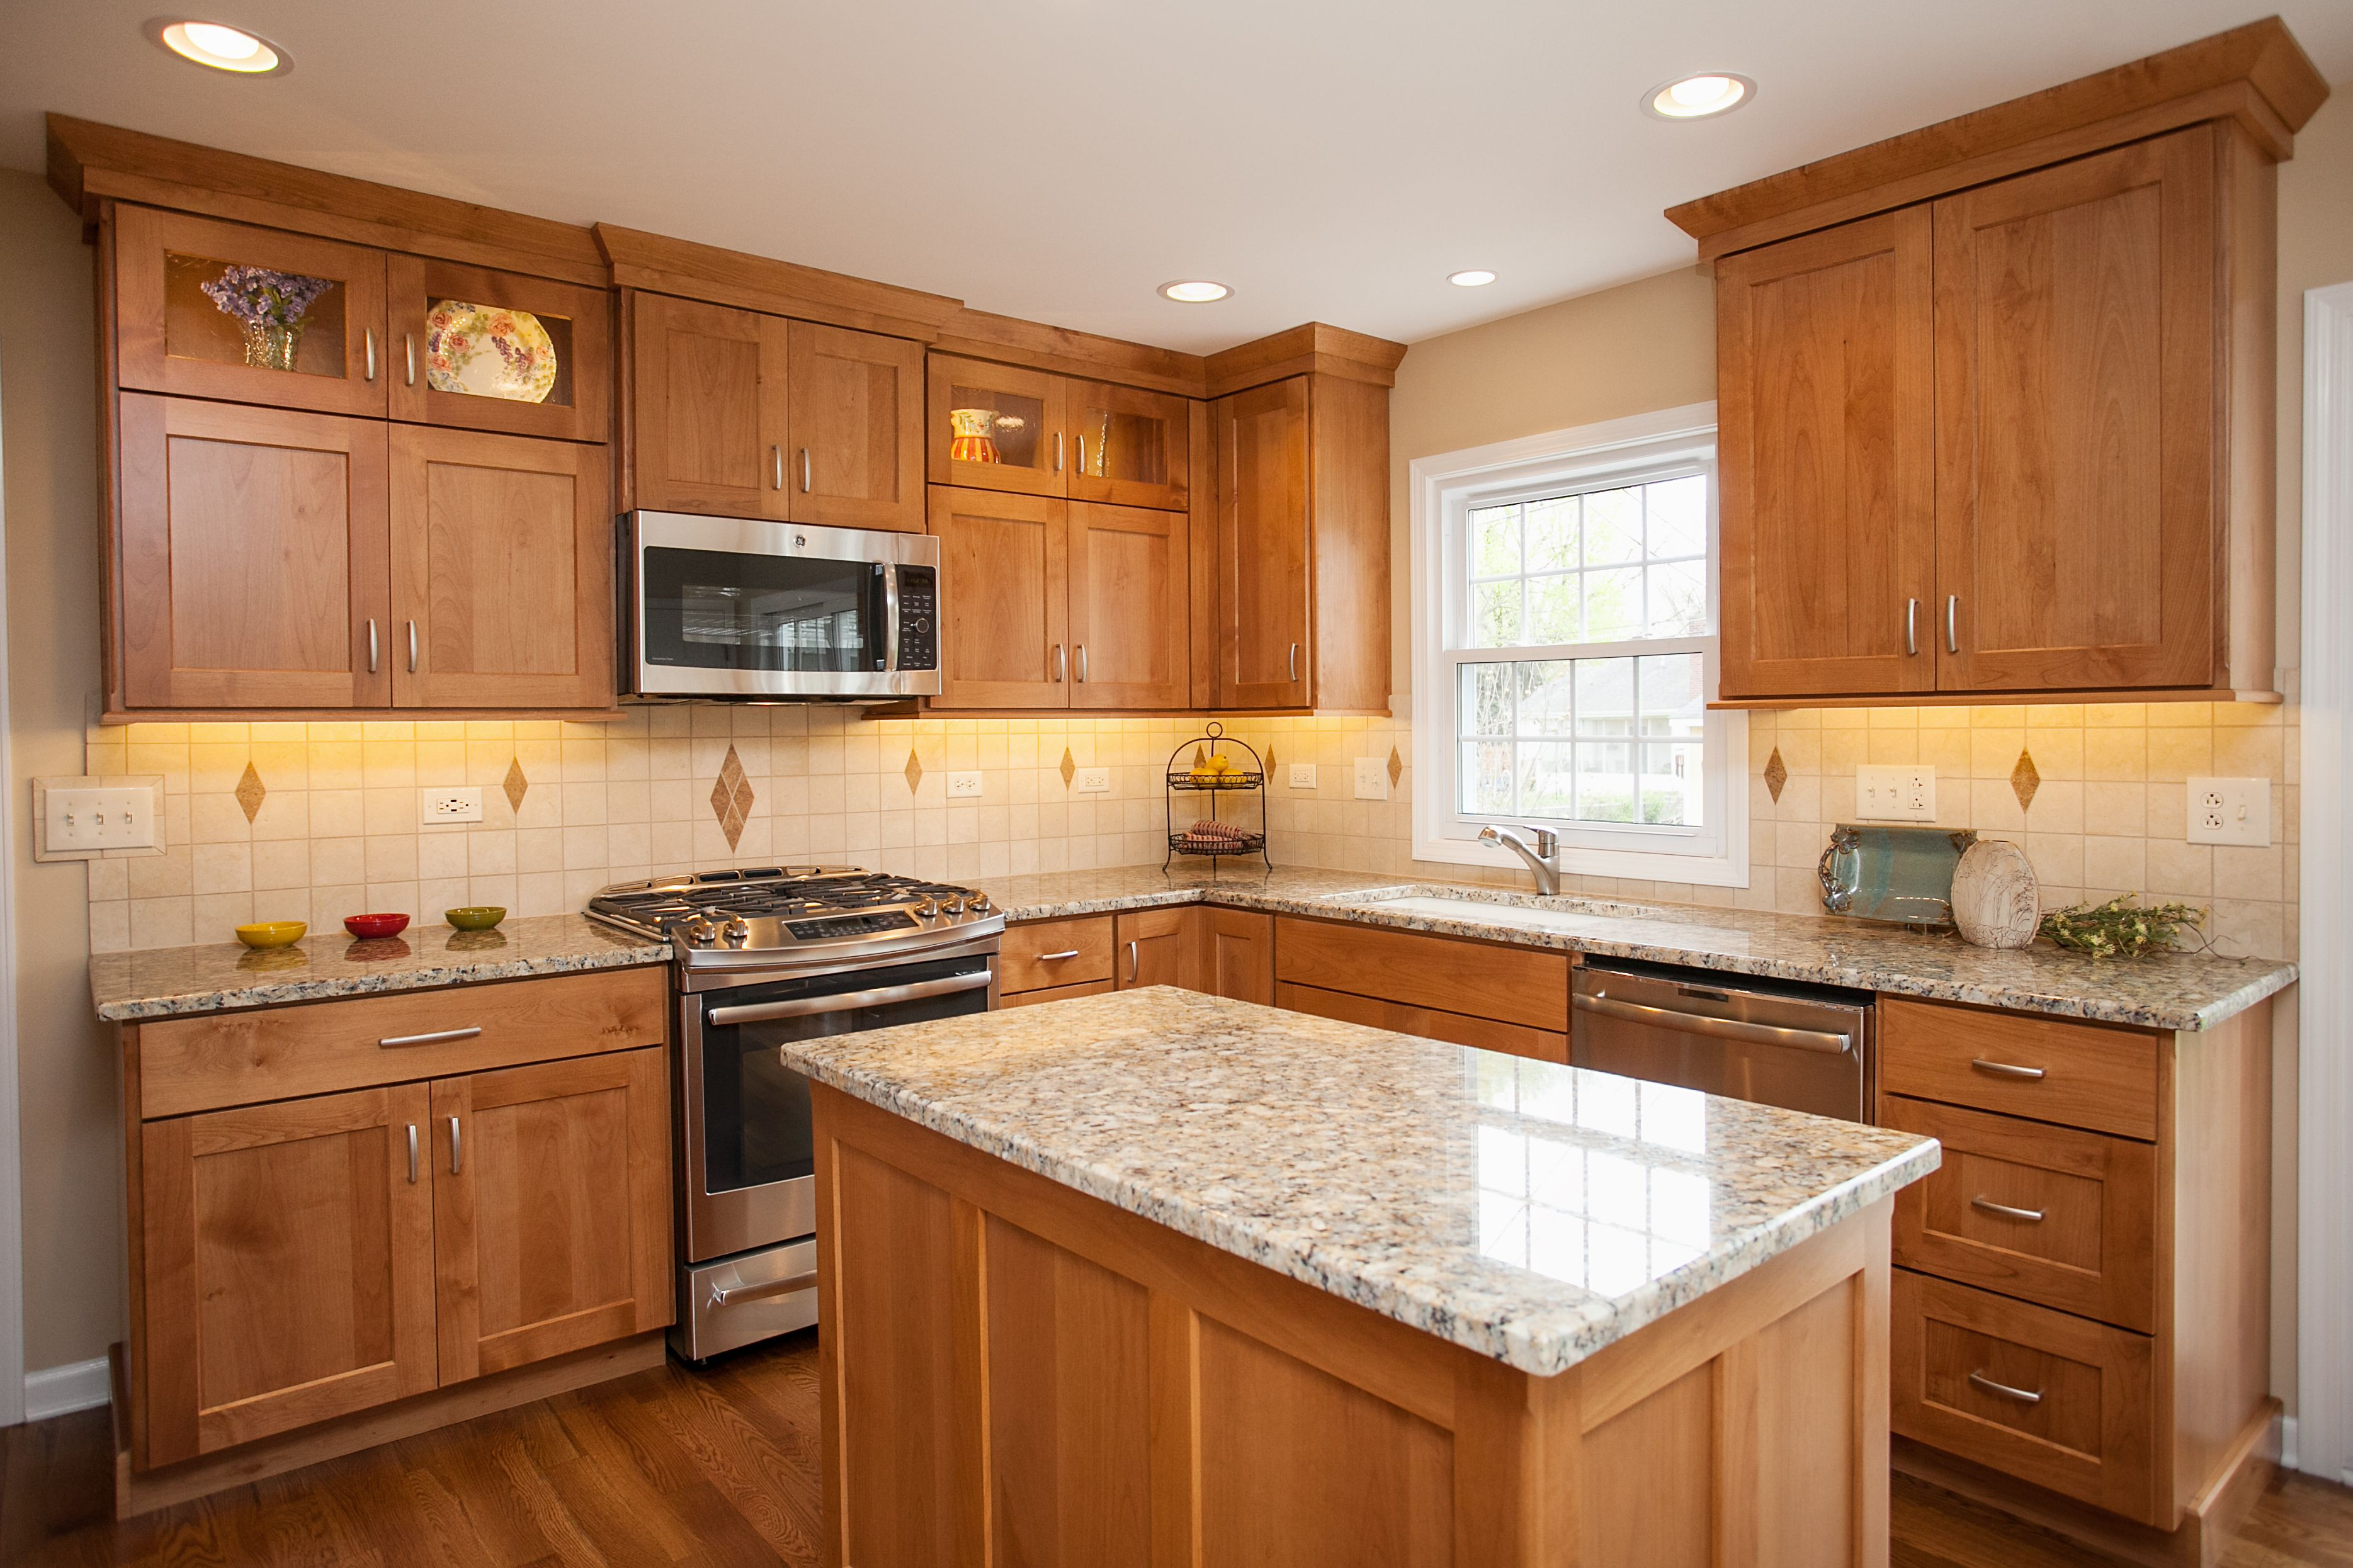 natural oak cabinets  Google Search  Interiors in 2019